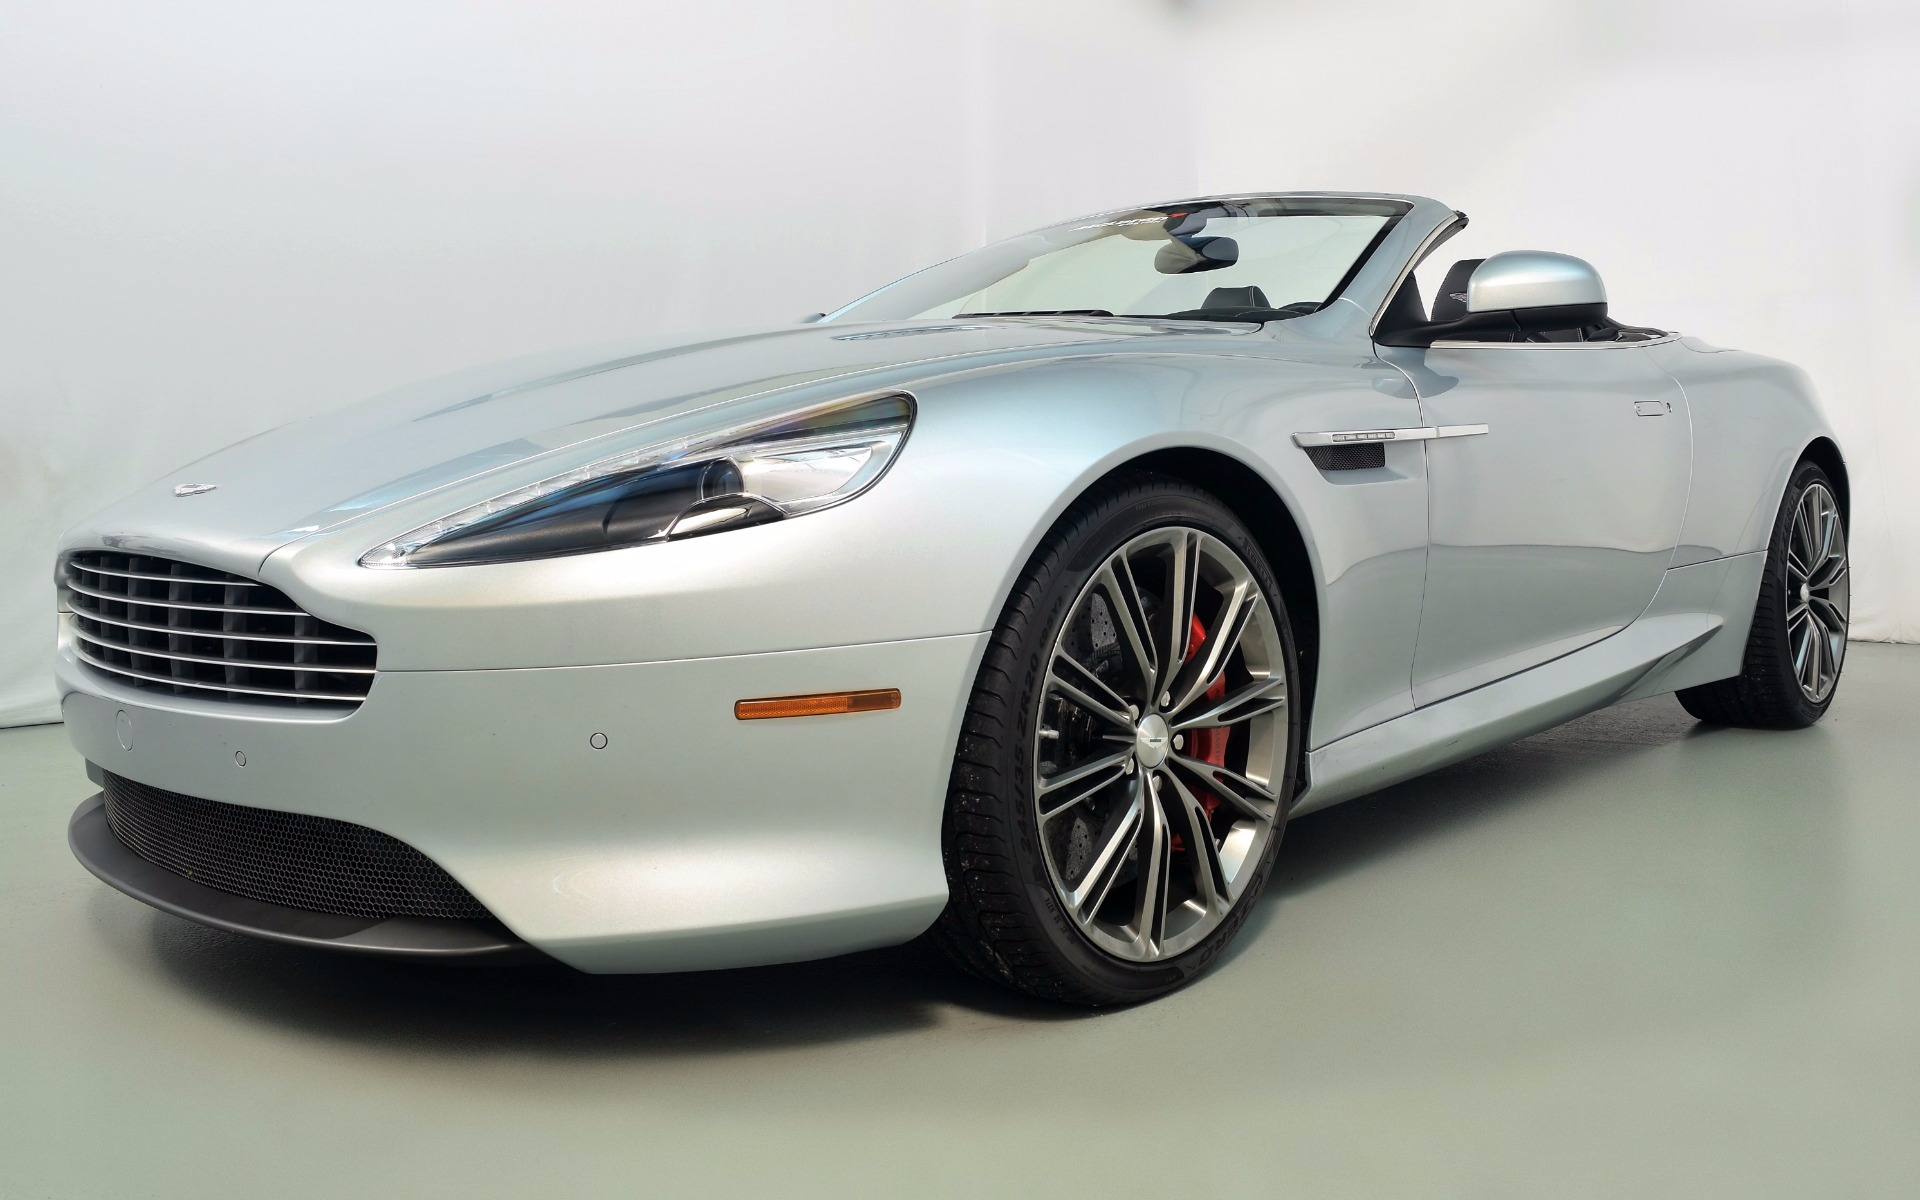 2015 aston martin db9 volante for sale in norwell ma b16776 mclaren boston. Black Bedroom Furniture Sets. Home Design Ideas